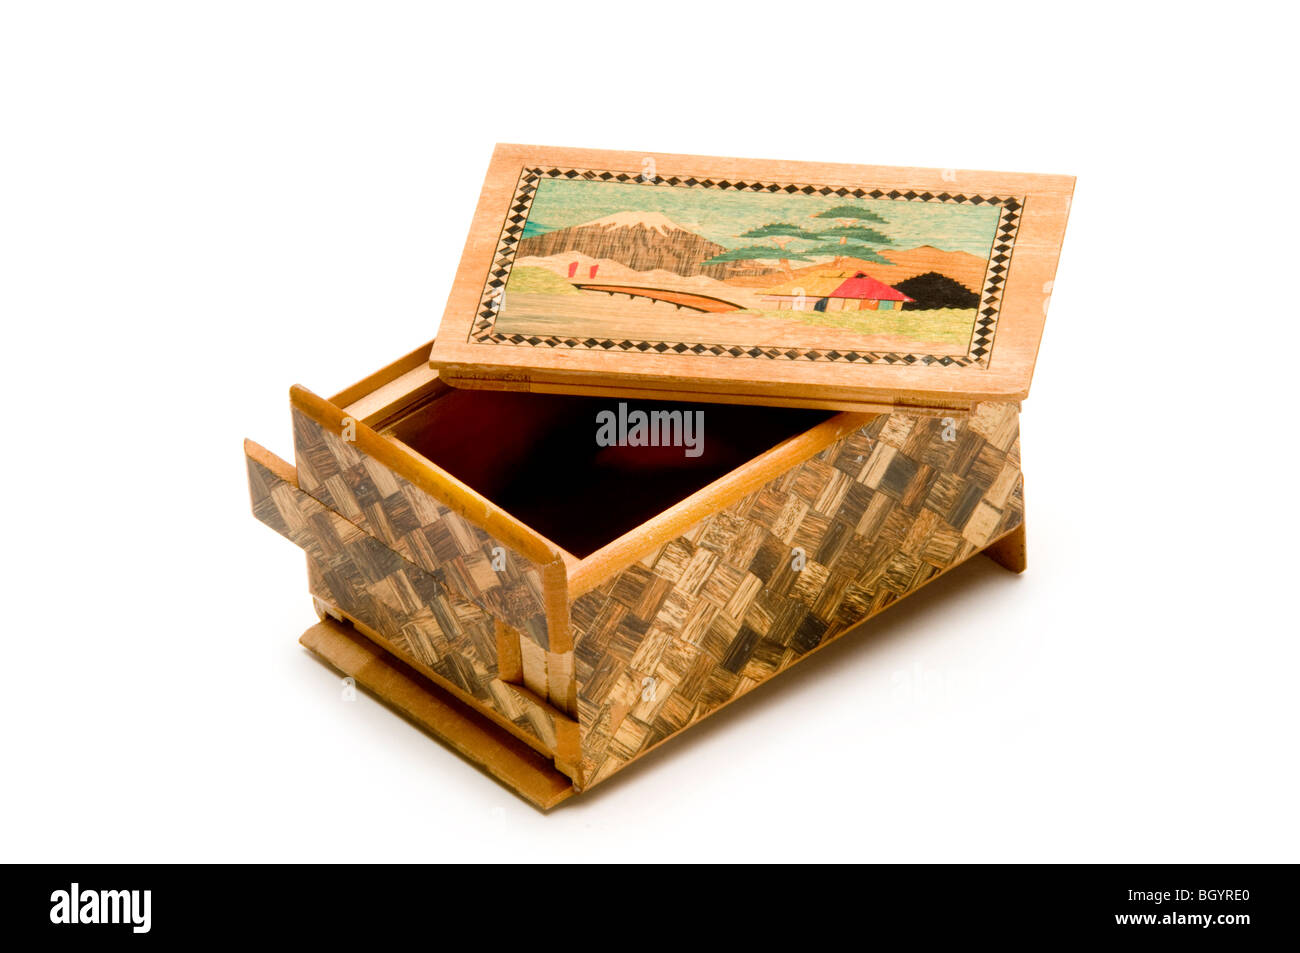 chinese wooden puzzle box